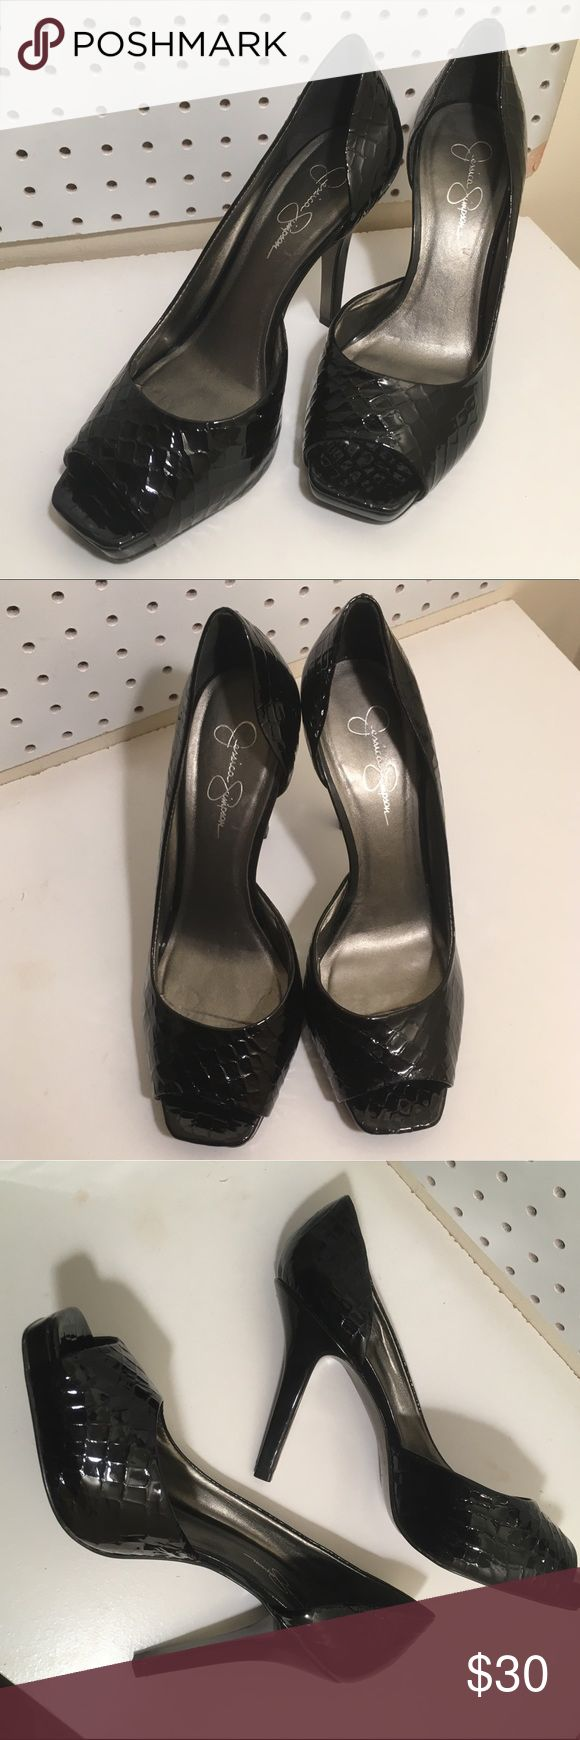 jessica simpson snakeskin heels These black, shiny, snakeskin heels are perfect! In great condition. One little scratch (see pictures). Jessica Simpson Shoes Heels